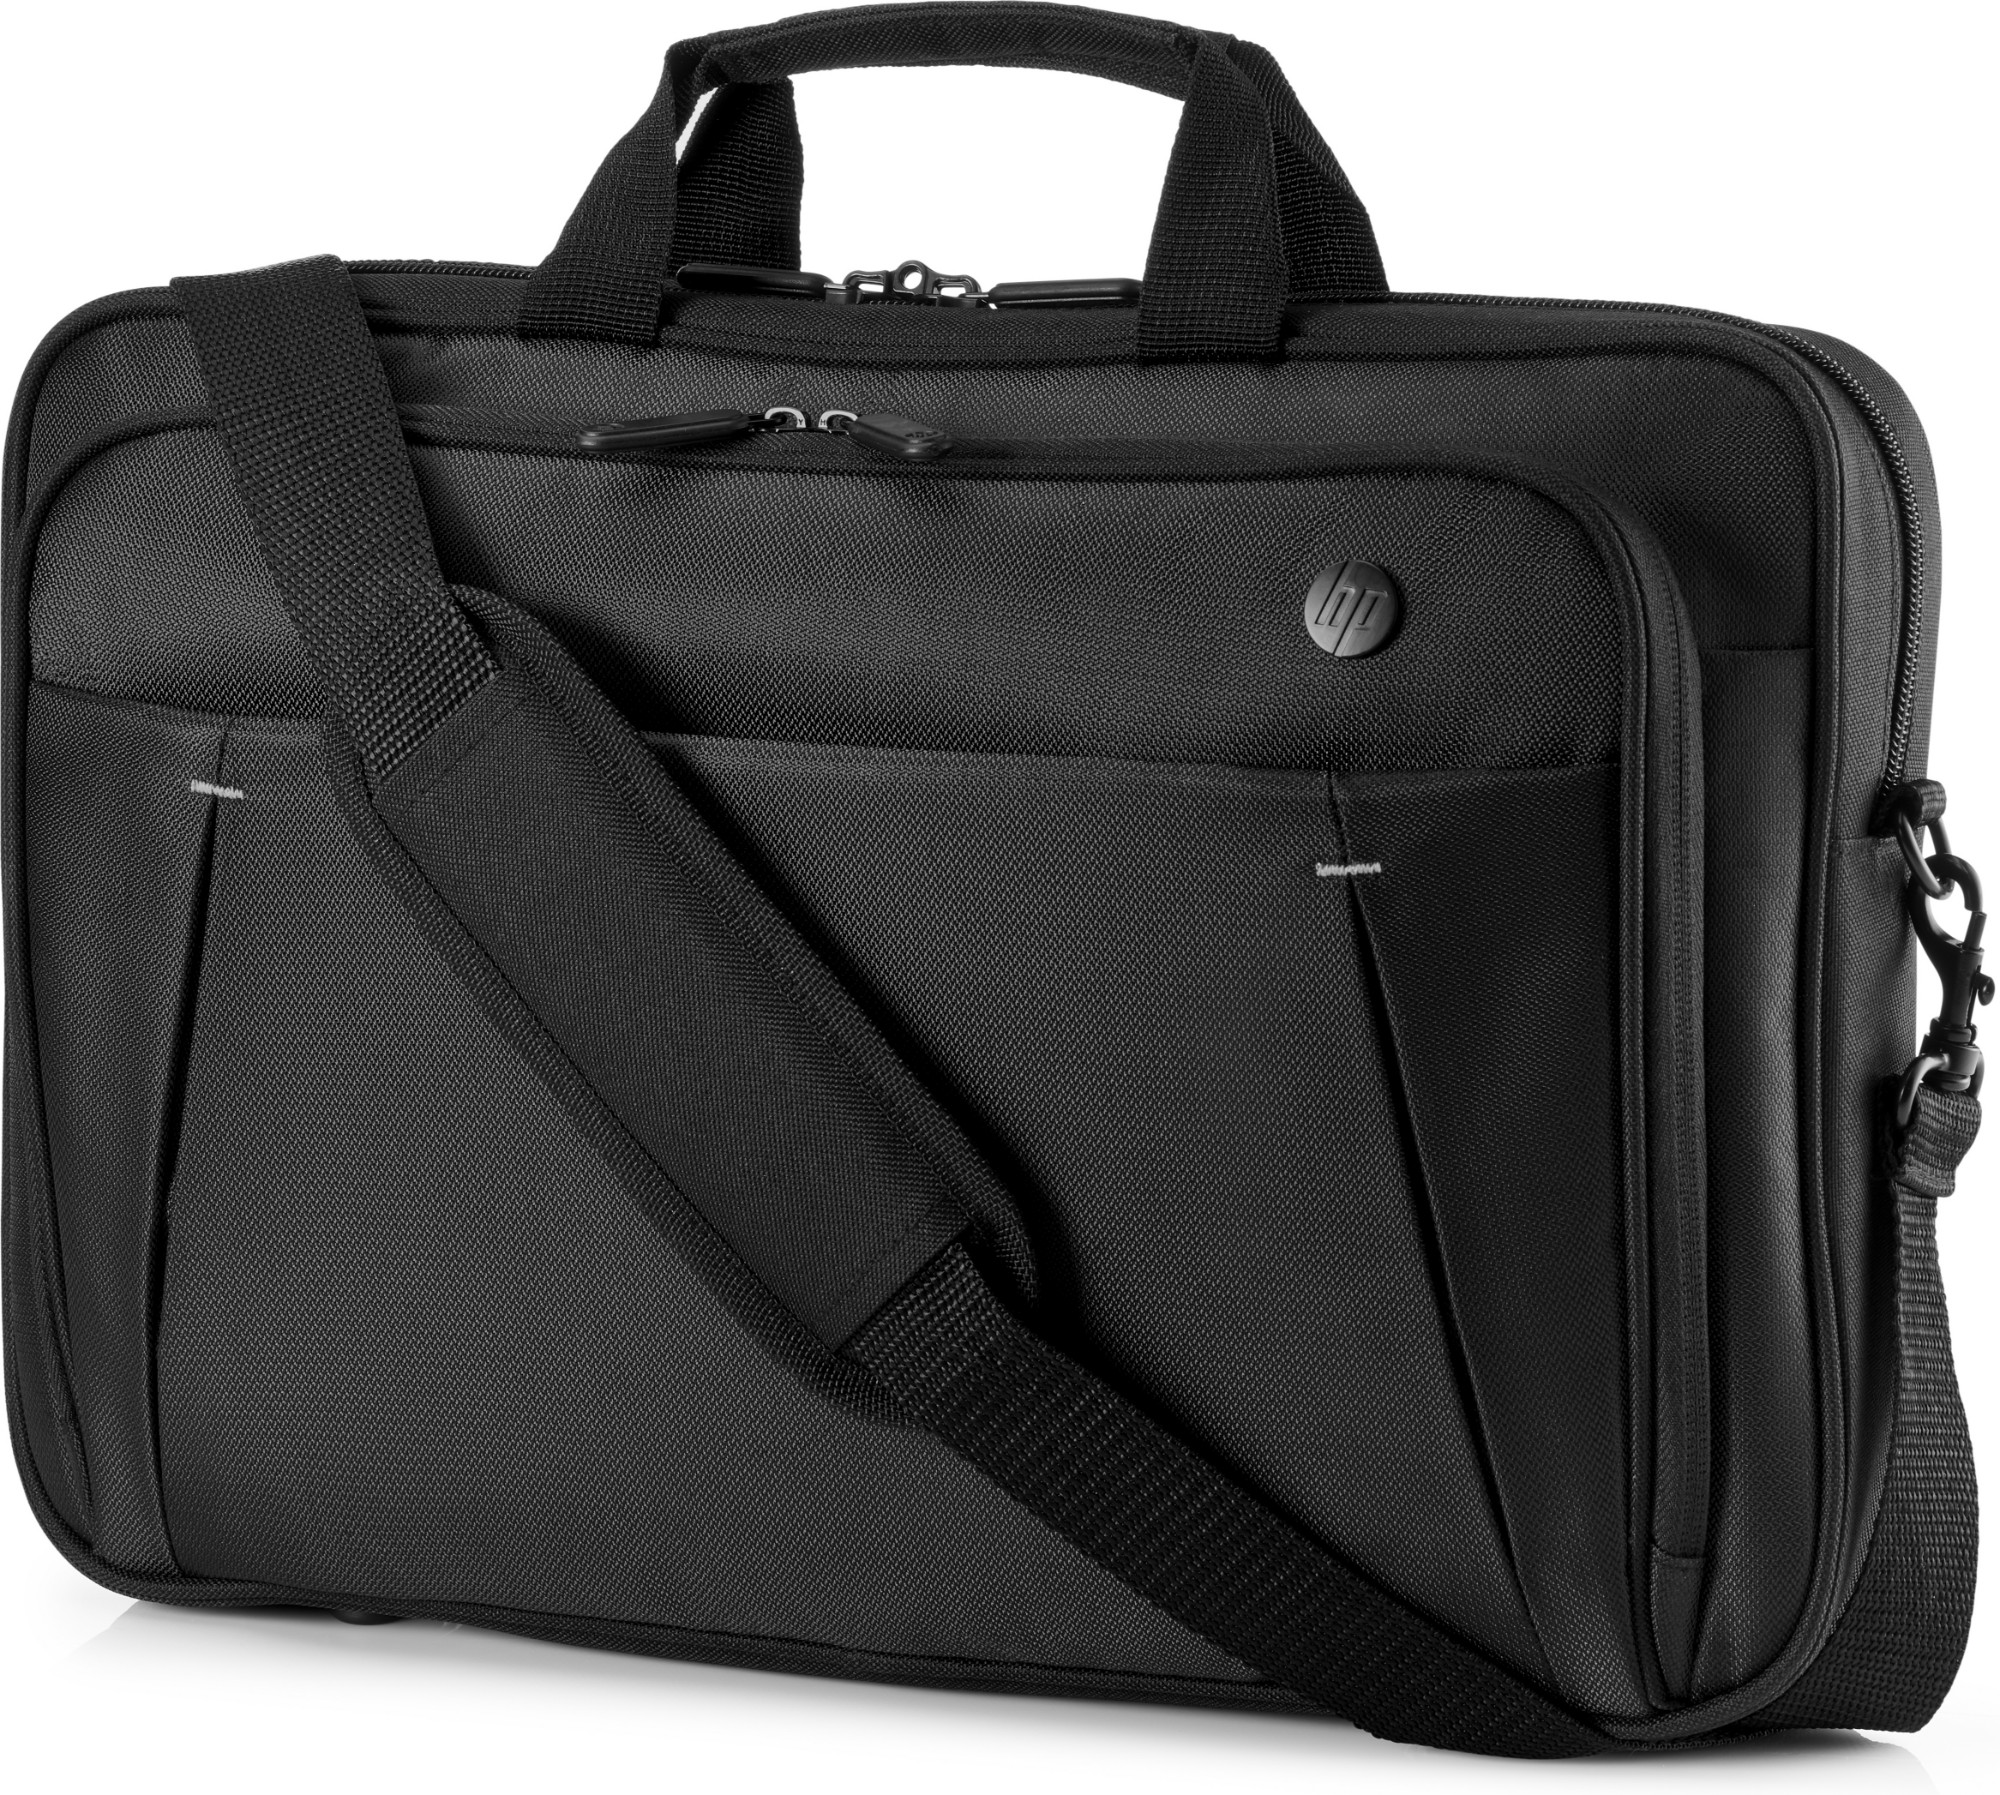 HP 15.6 Business Top Load notebook case